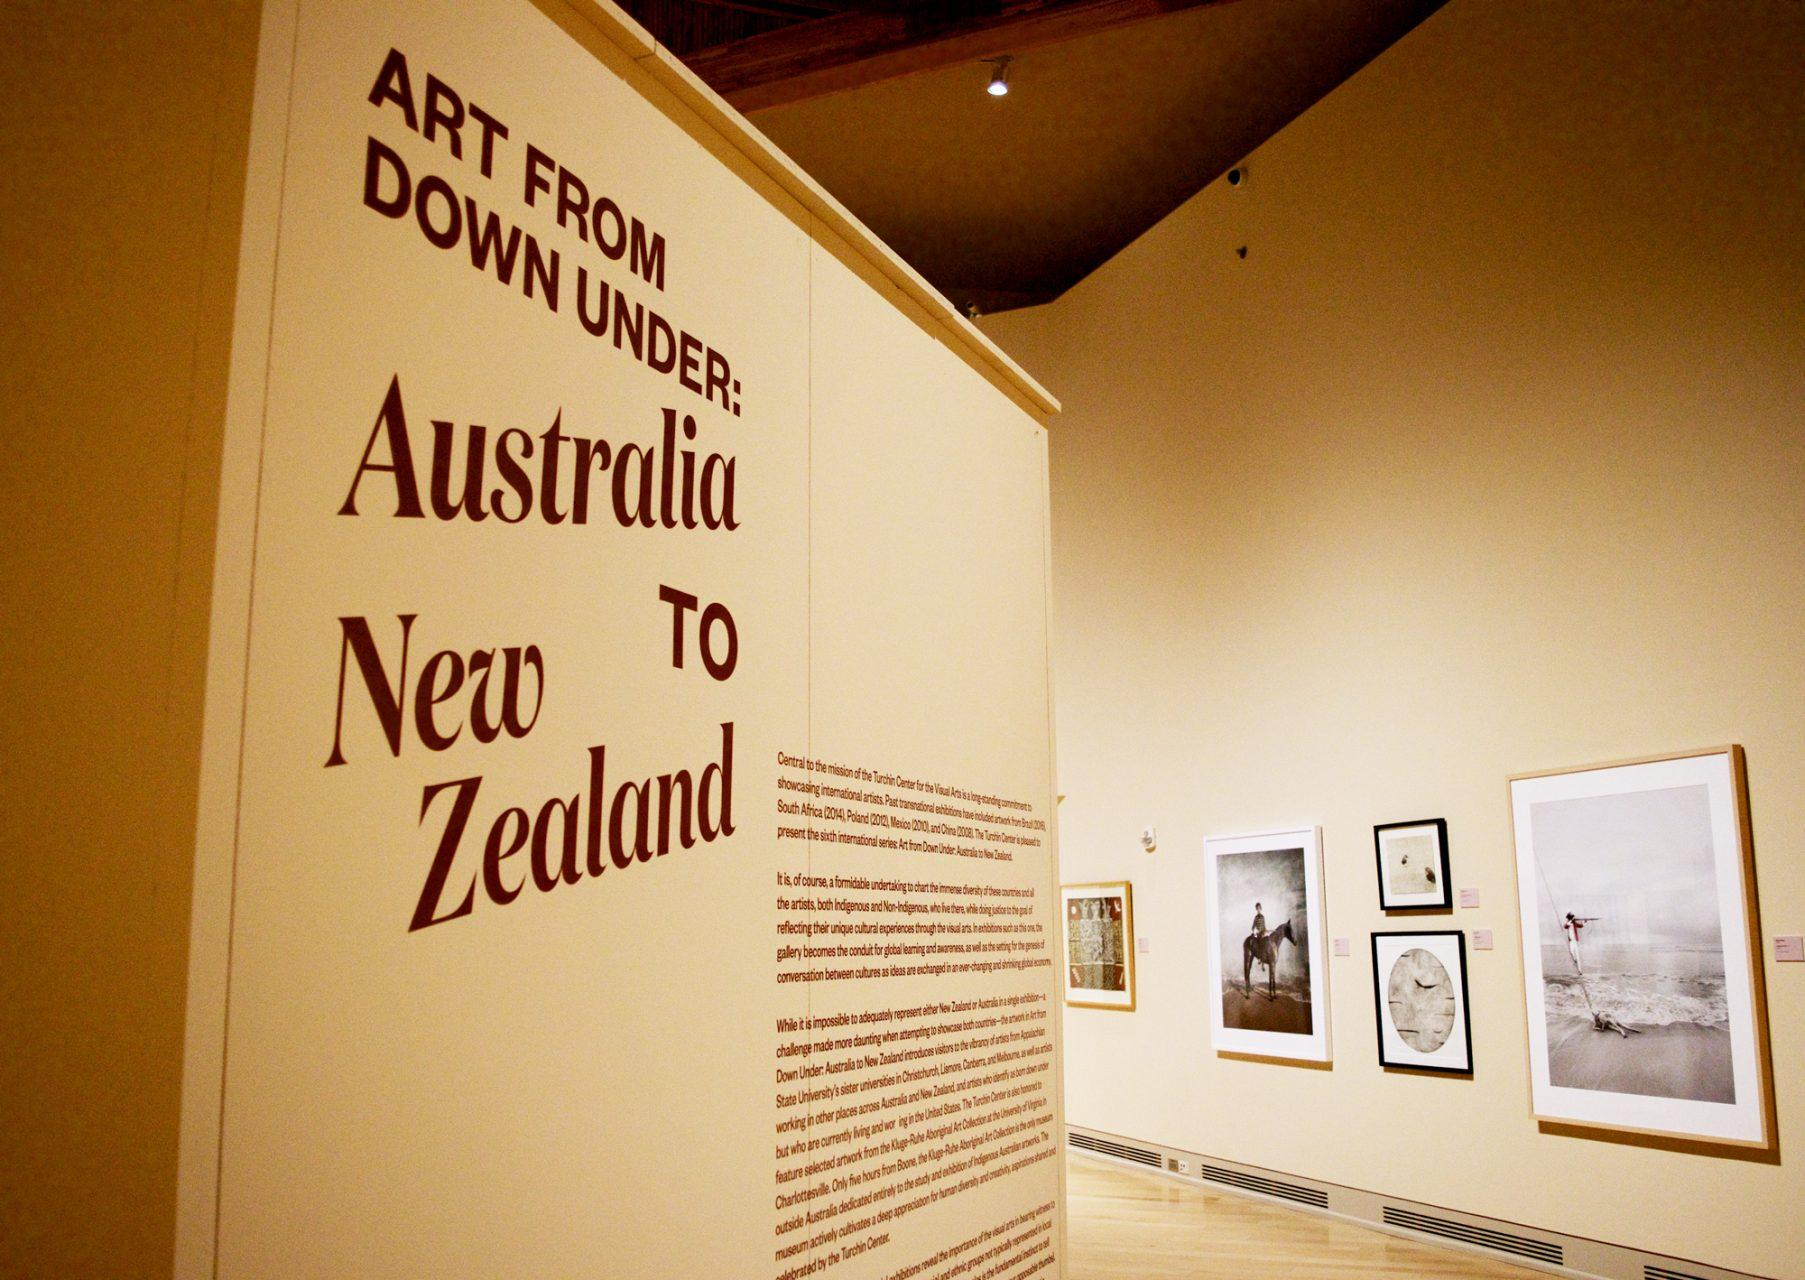 The introductory panel to the Art From Down Under: Australia to New Zealand in the Turchin Center for Visual Arts.